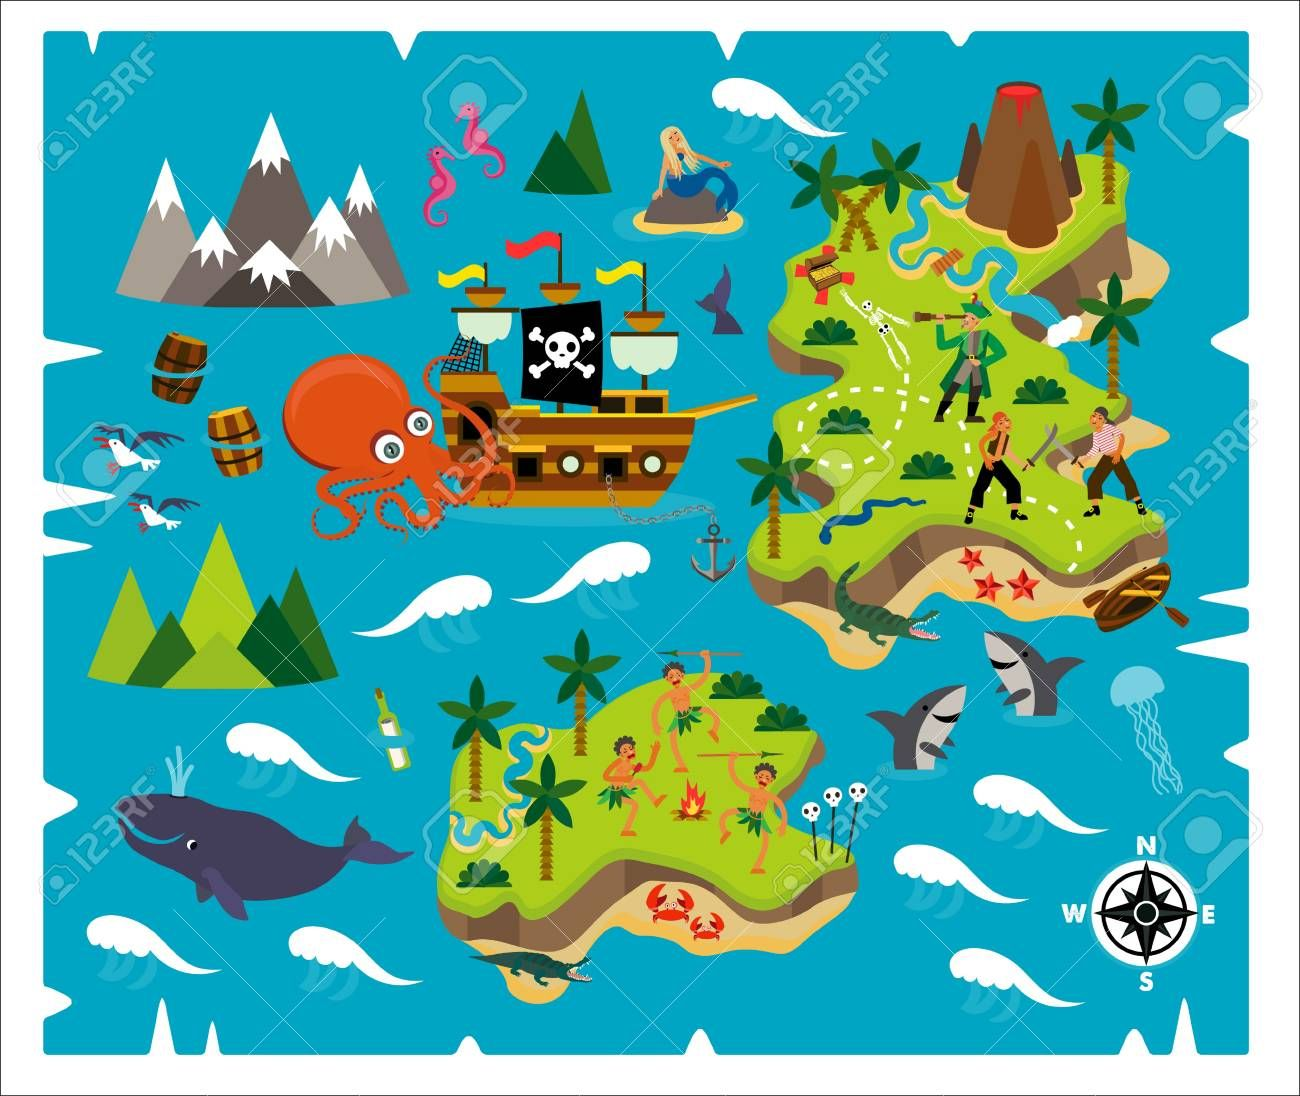 cartoon pirate map treasure travel adventure illustration affiliate map pirate cartoon treasure illustration pirate maps cartoon adventure travel cartoon pirate map treasure travel